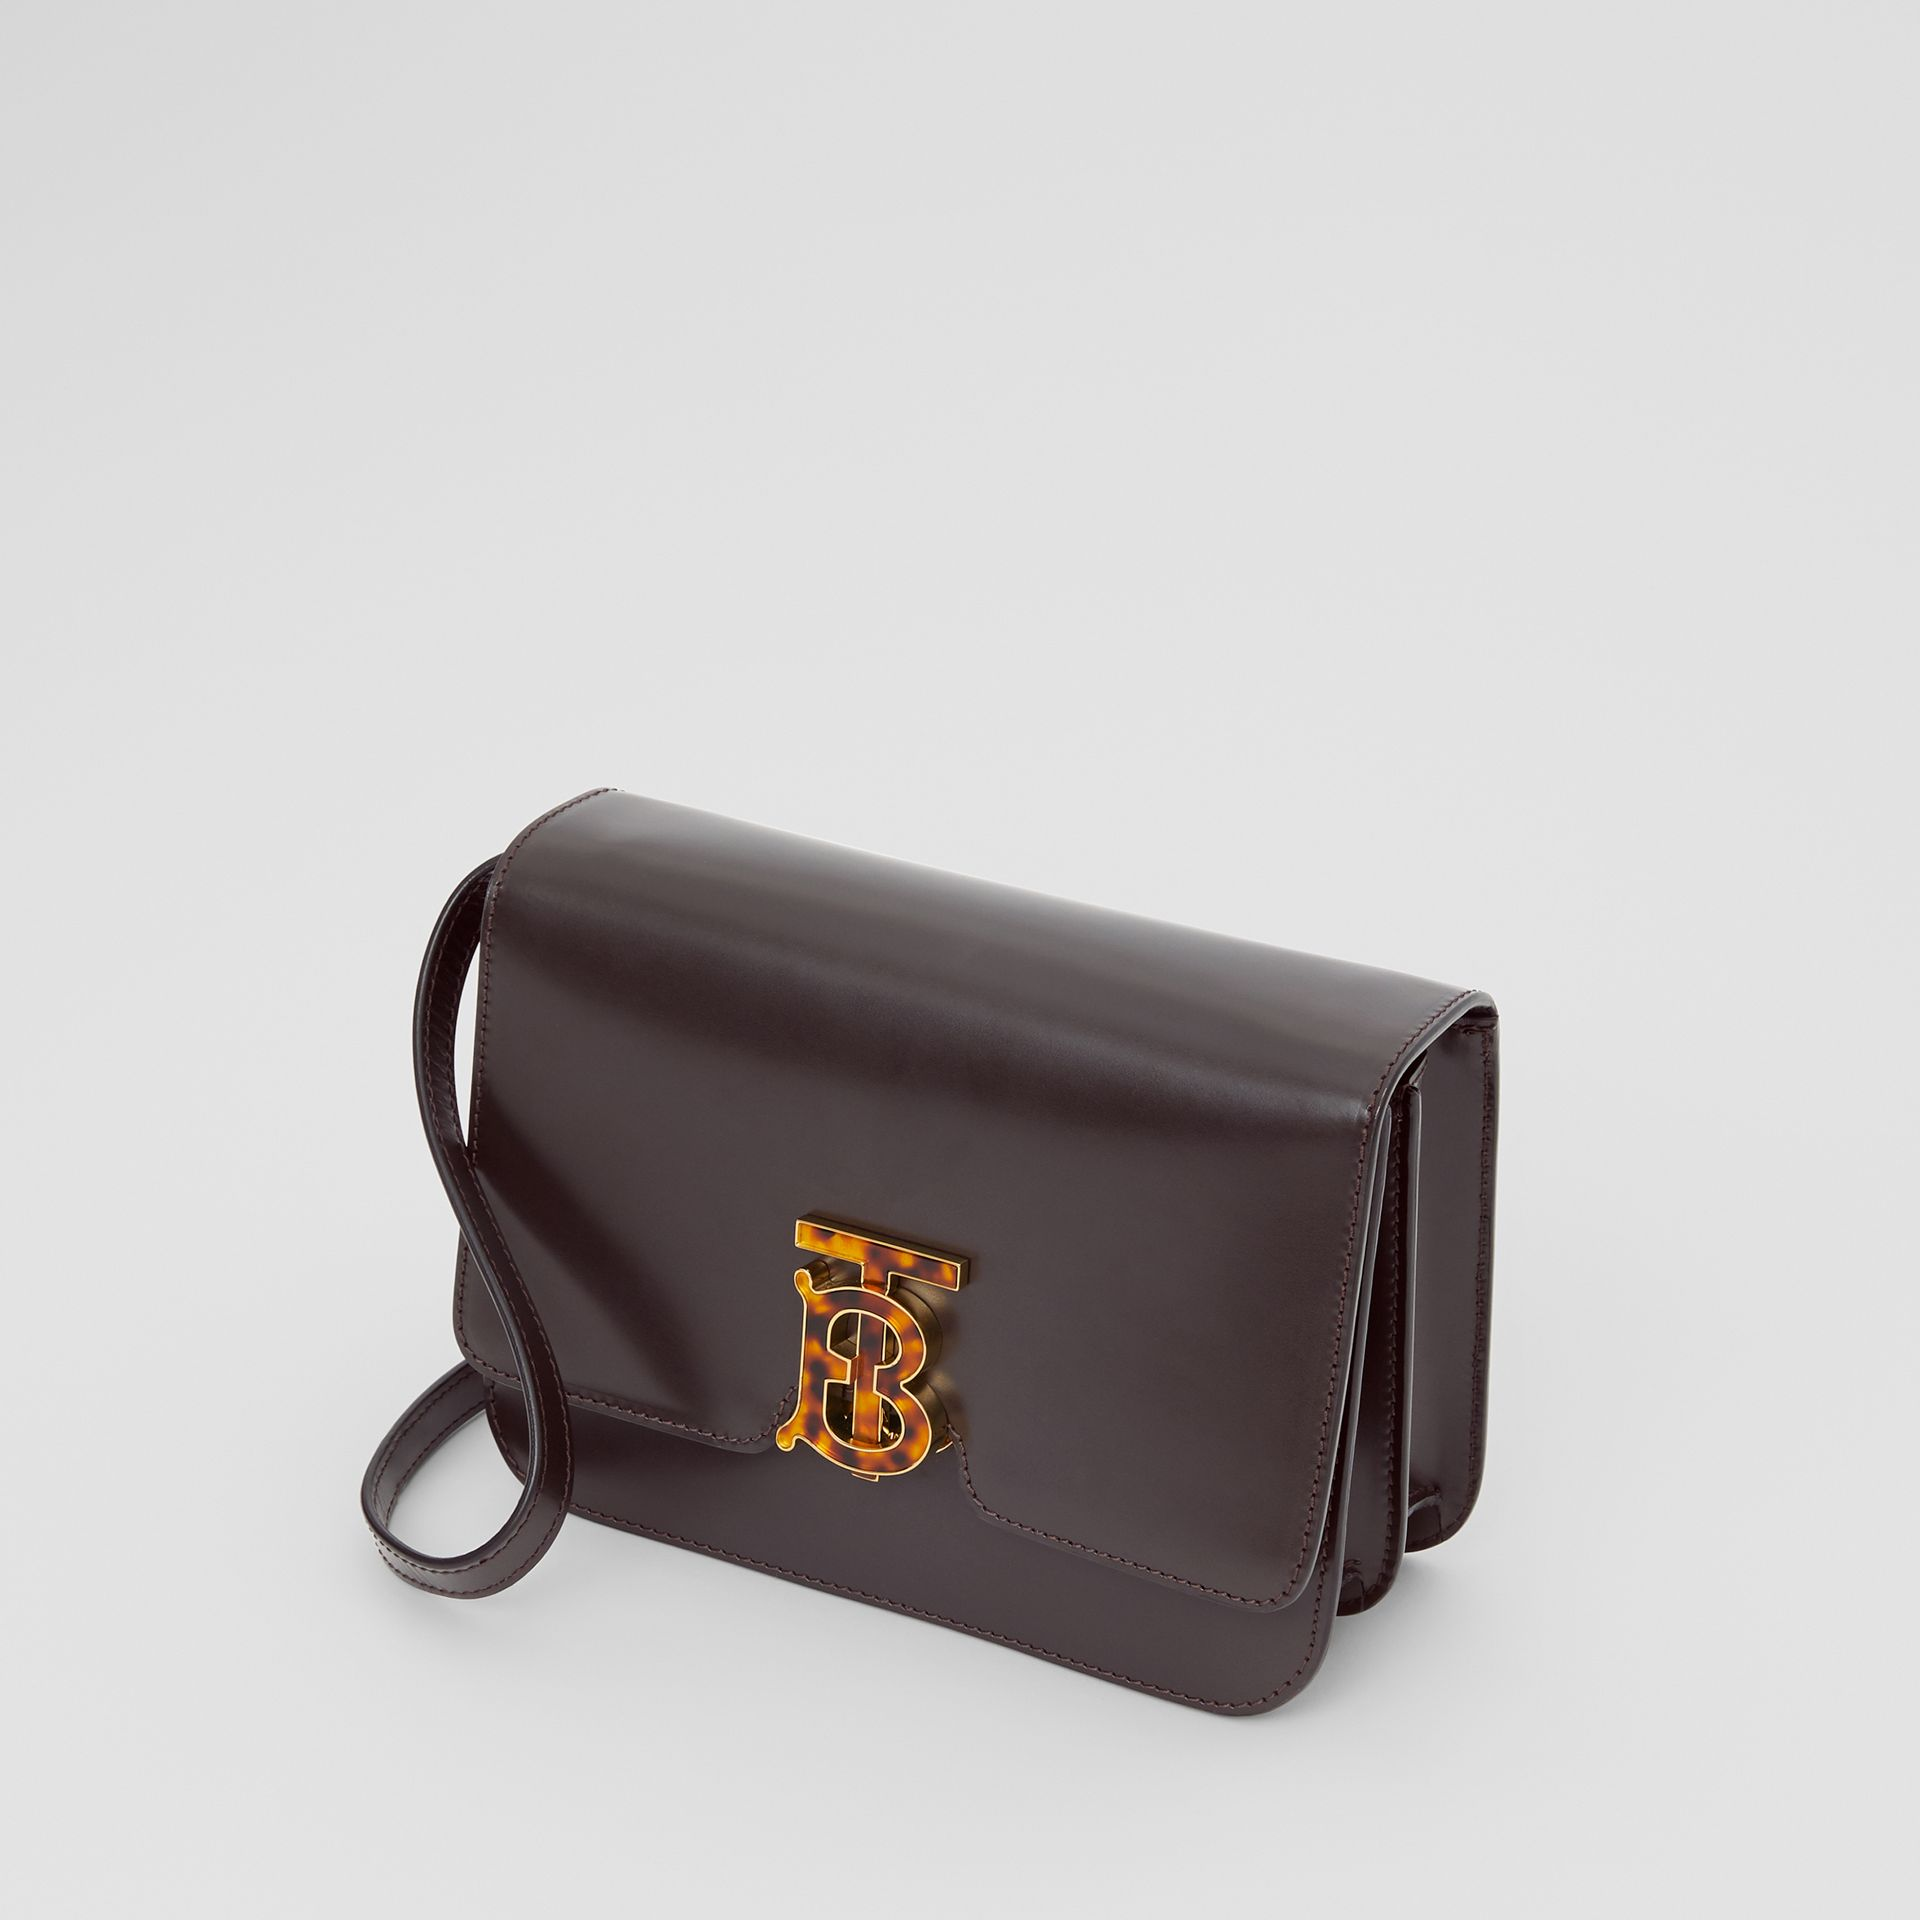 Small Leather TB Bag in Coffee - Women | Burberry - gallery image 3